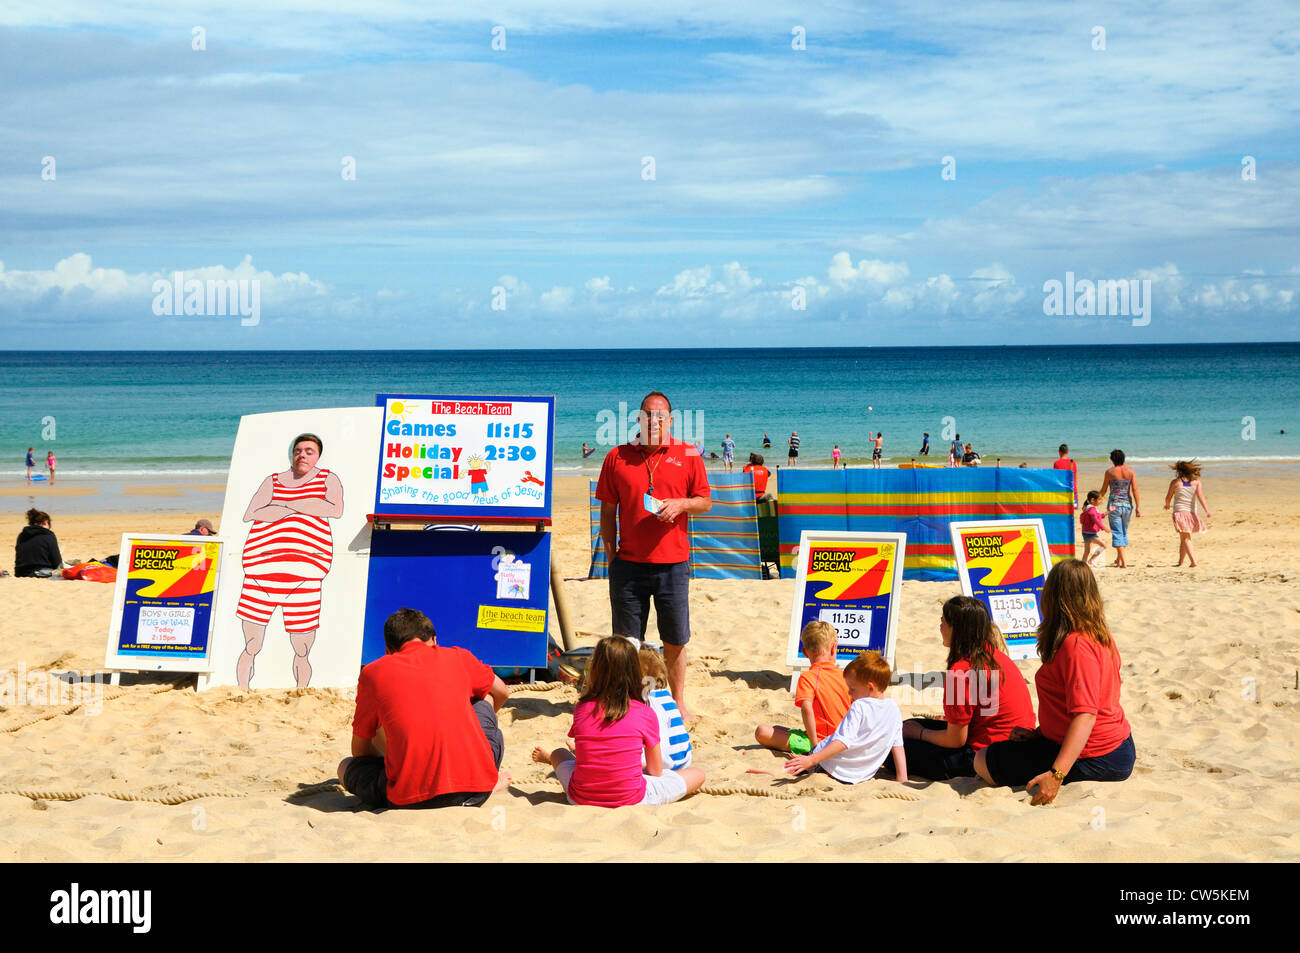 Beach entertainment for kids, Carbis Bay, Cornwall, UK - Stock Image